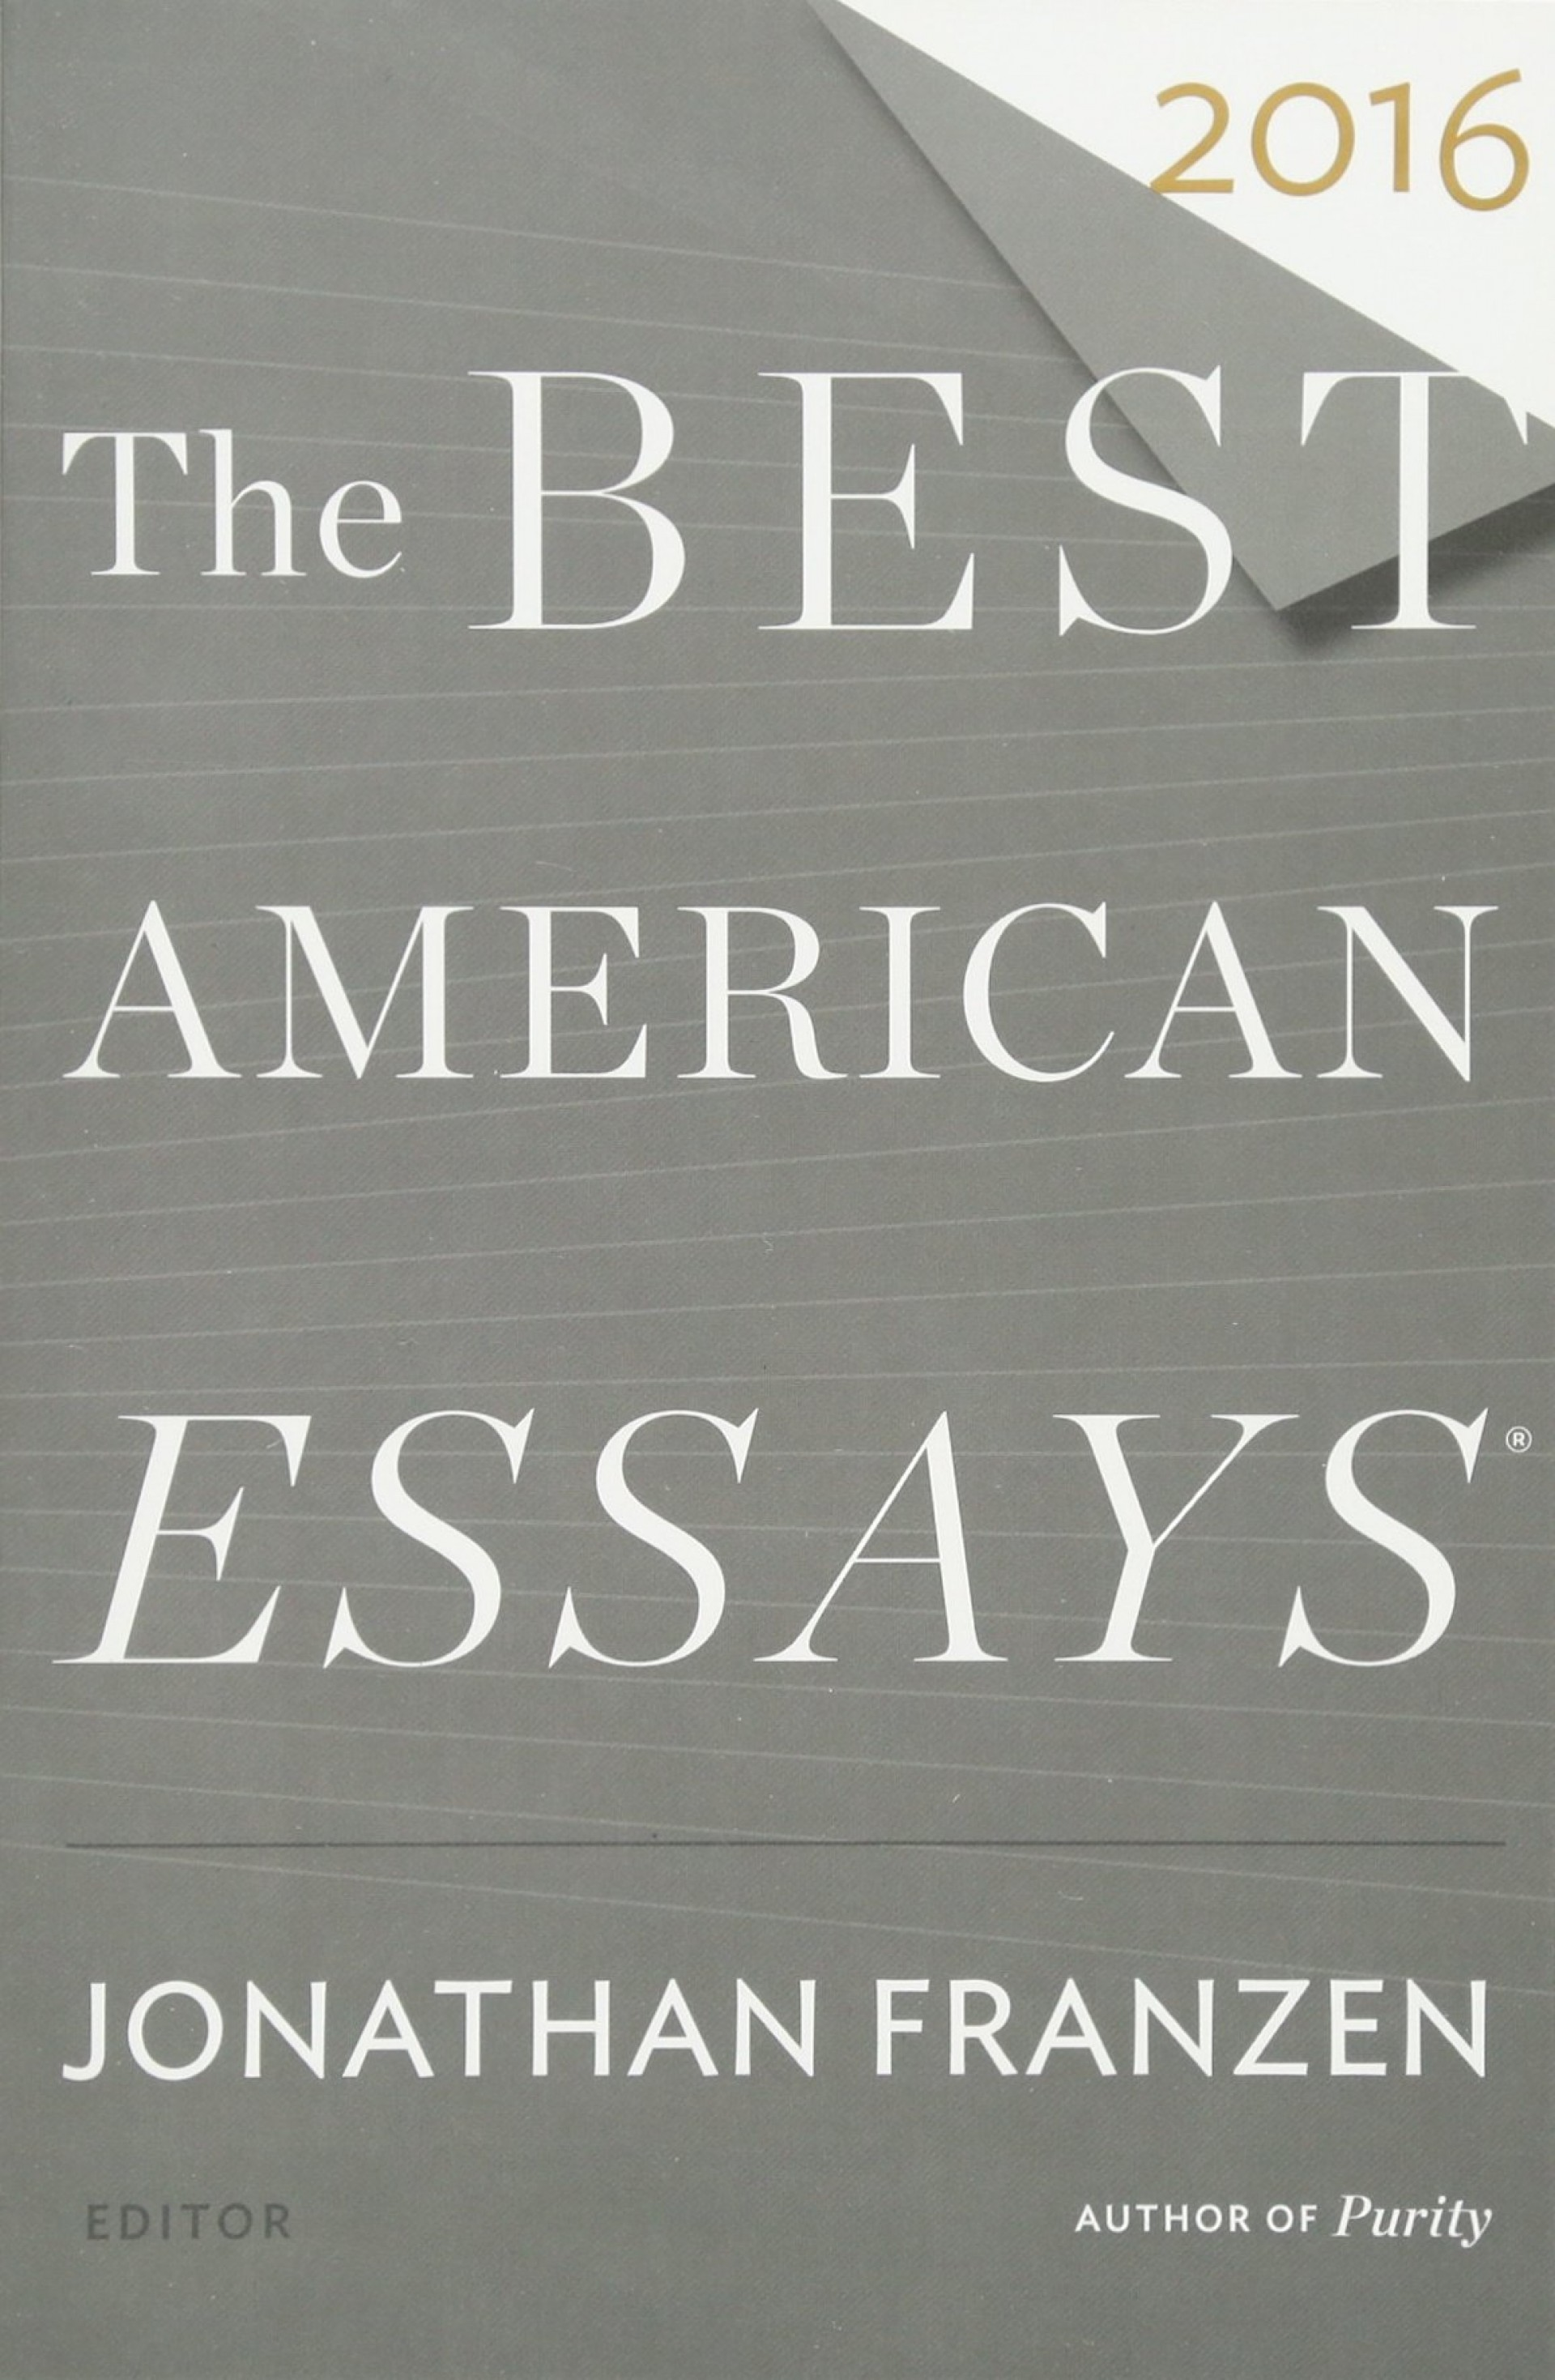 005 The Best American Essays Essay Example Wonderful 2018 Pdf 2017 Table Of Contents 2015 Free 1920